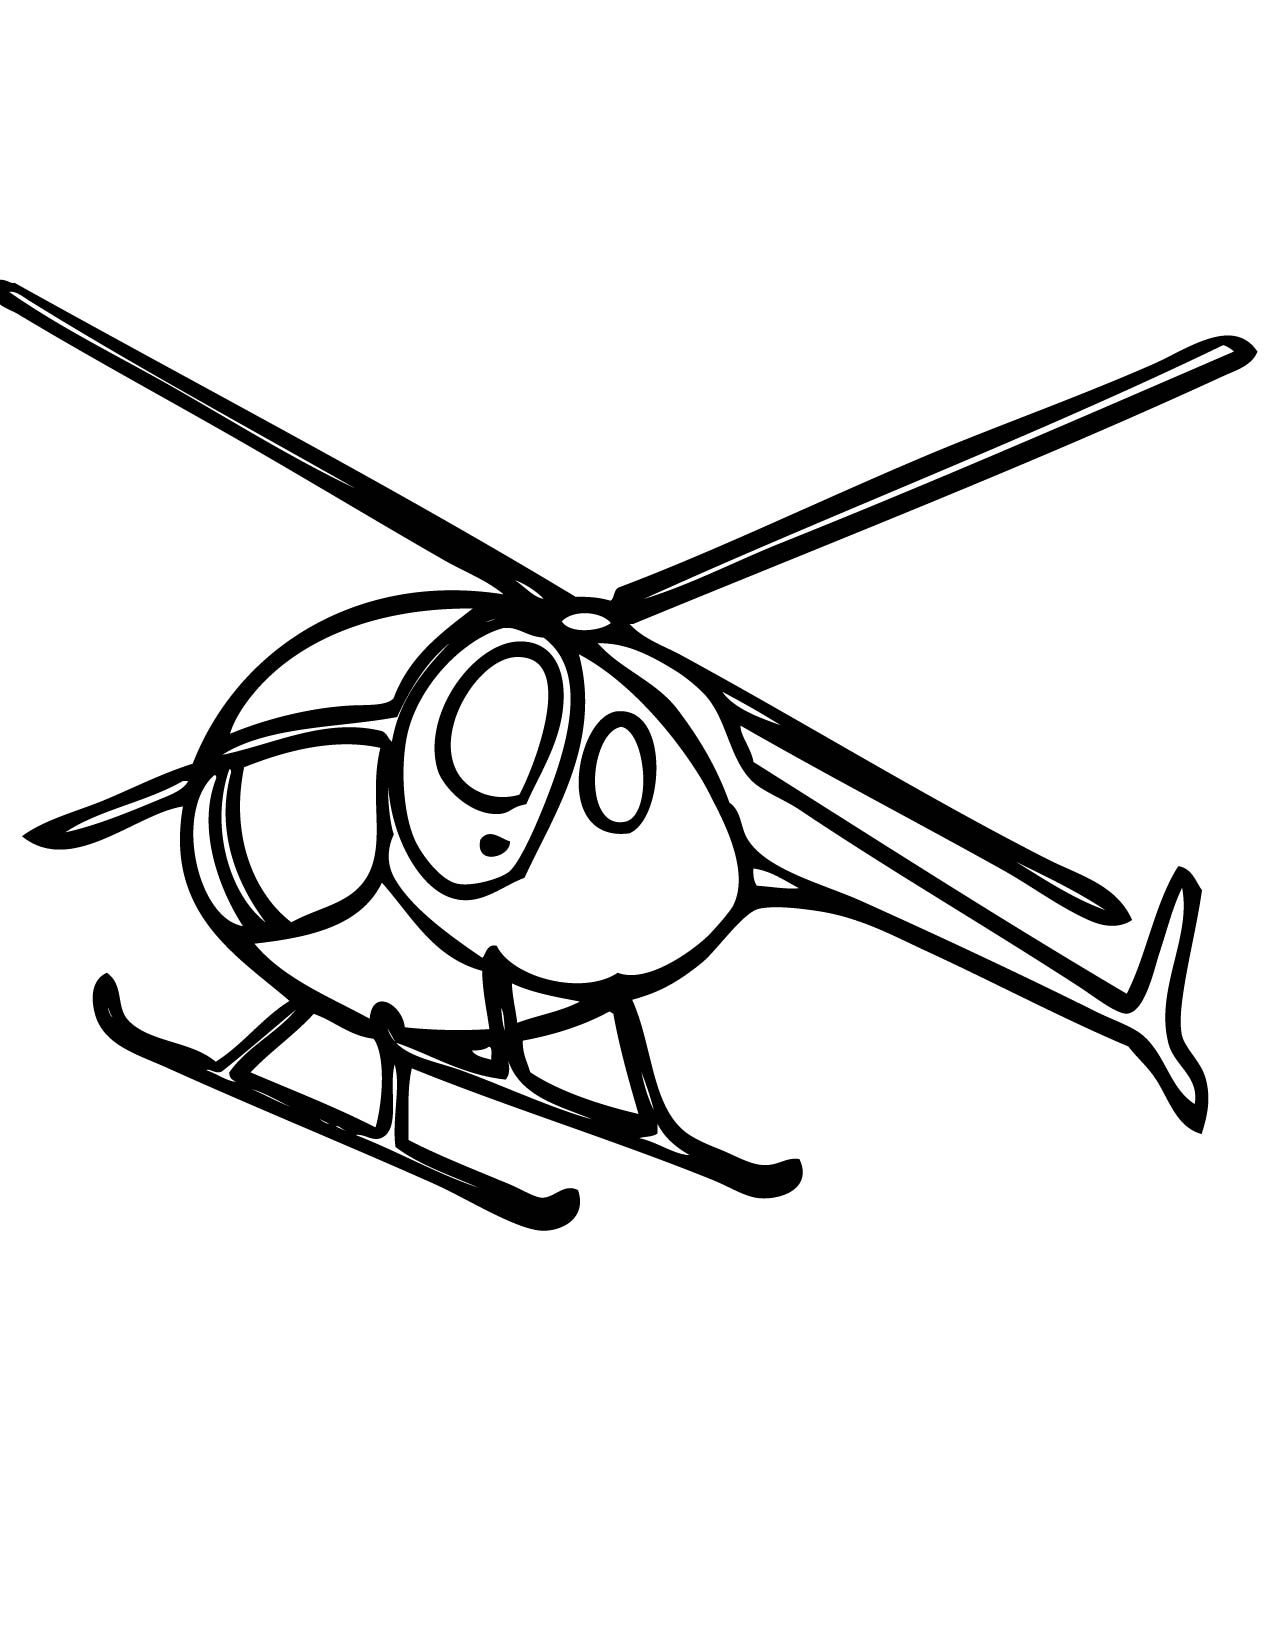 helicopter colouring pictures free printable helicopter coloring pages for kids colouring helicopter pictures